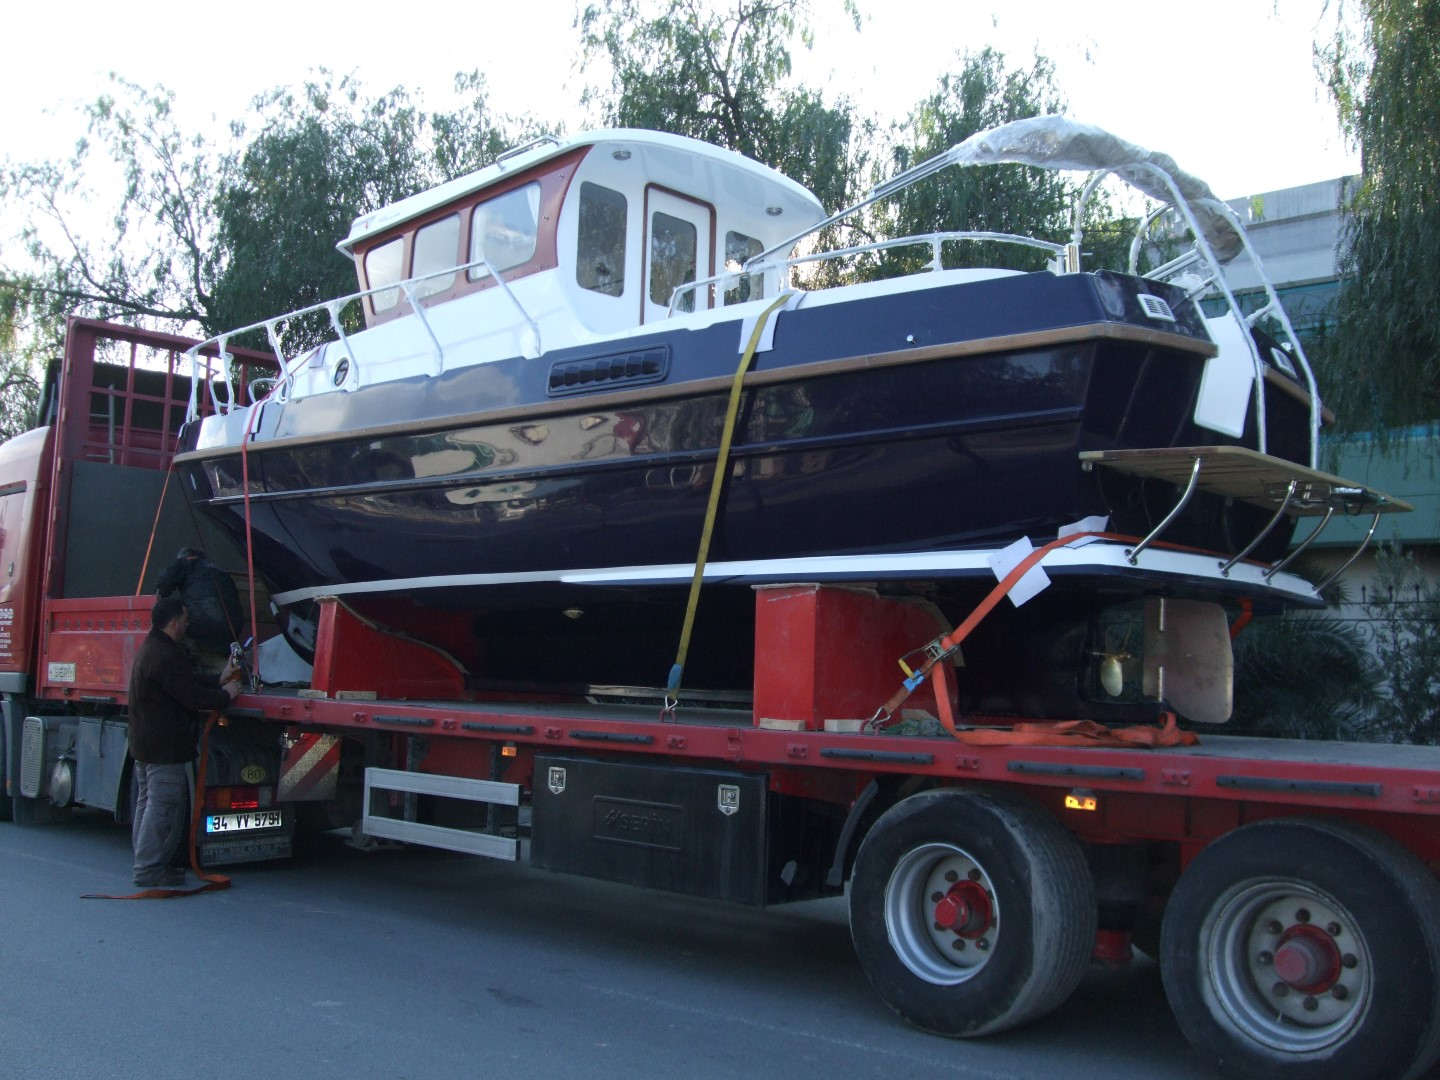 Tacar Mini Trawler on the way